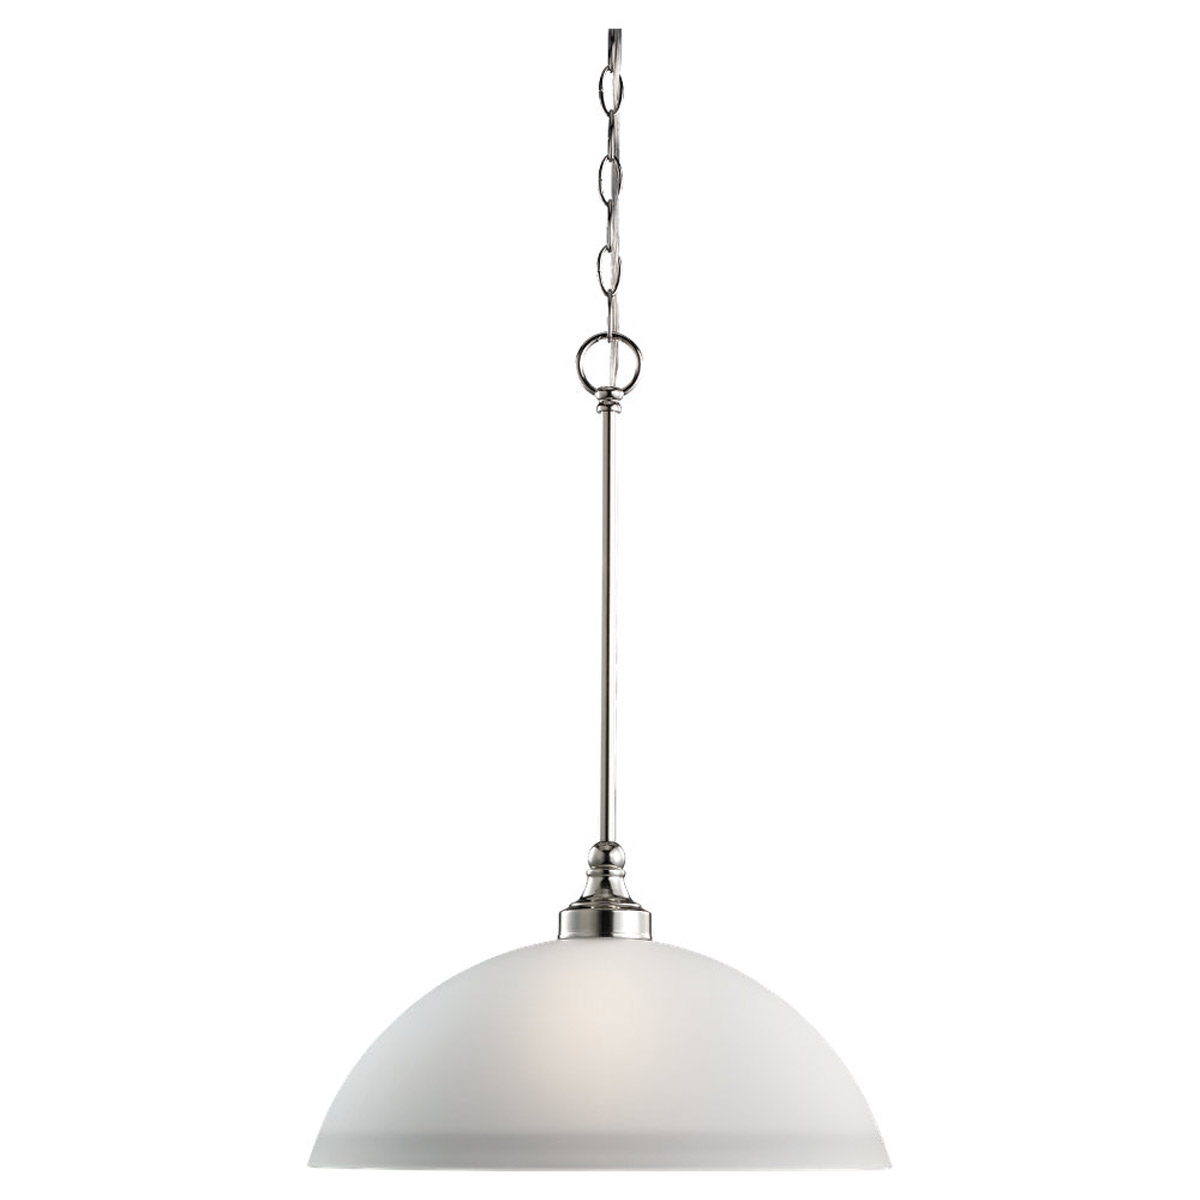 Sea Gull Lighting Wellington 1 Light Pendant in Polished Nickel 65655-841 photo